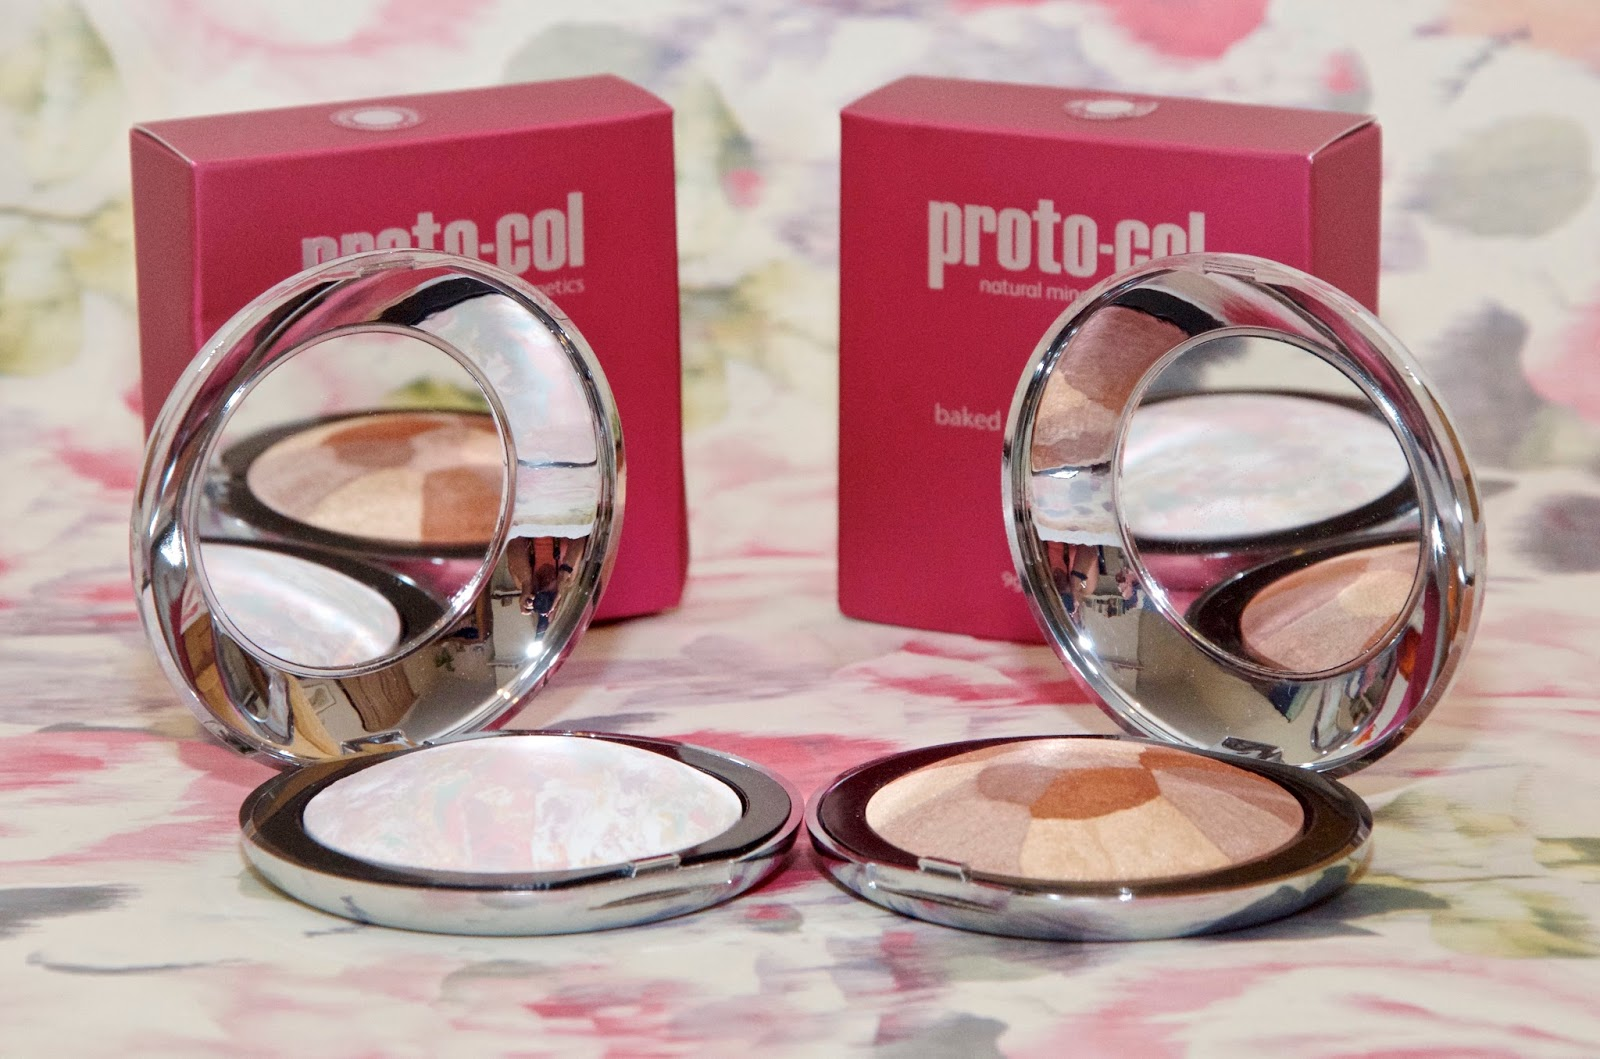 Baked Mineral Color Corrector and Baked Mineral Shimmer powder compacts on a pink floral paper